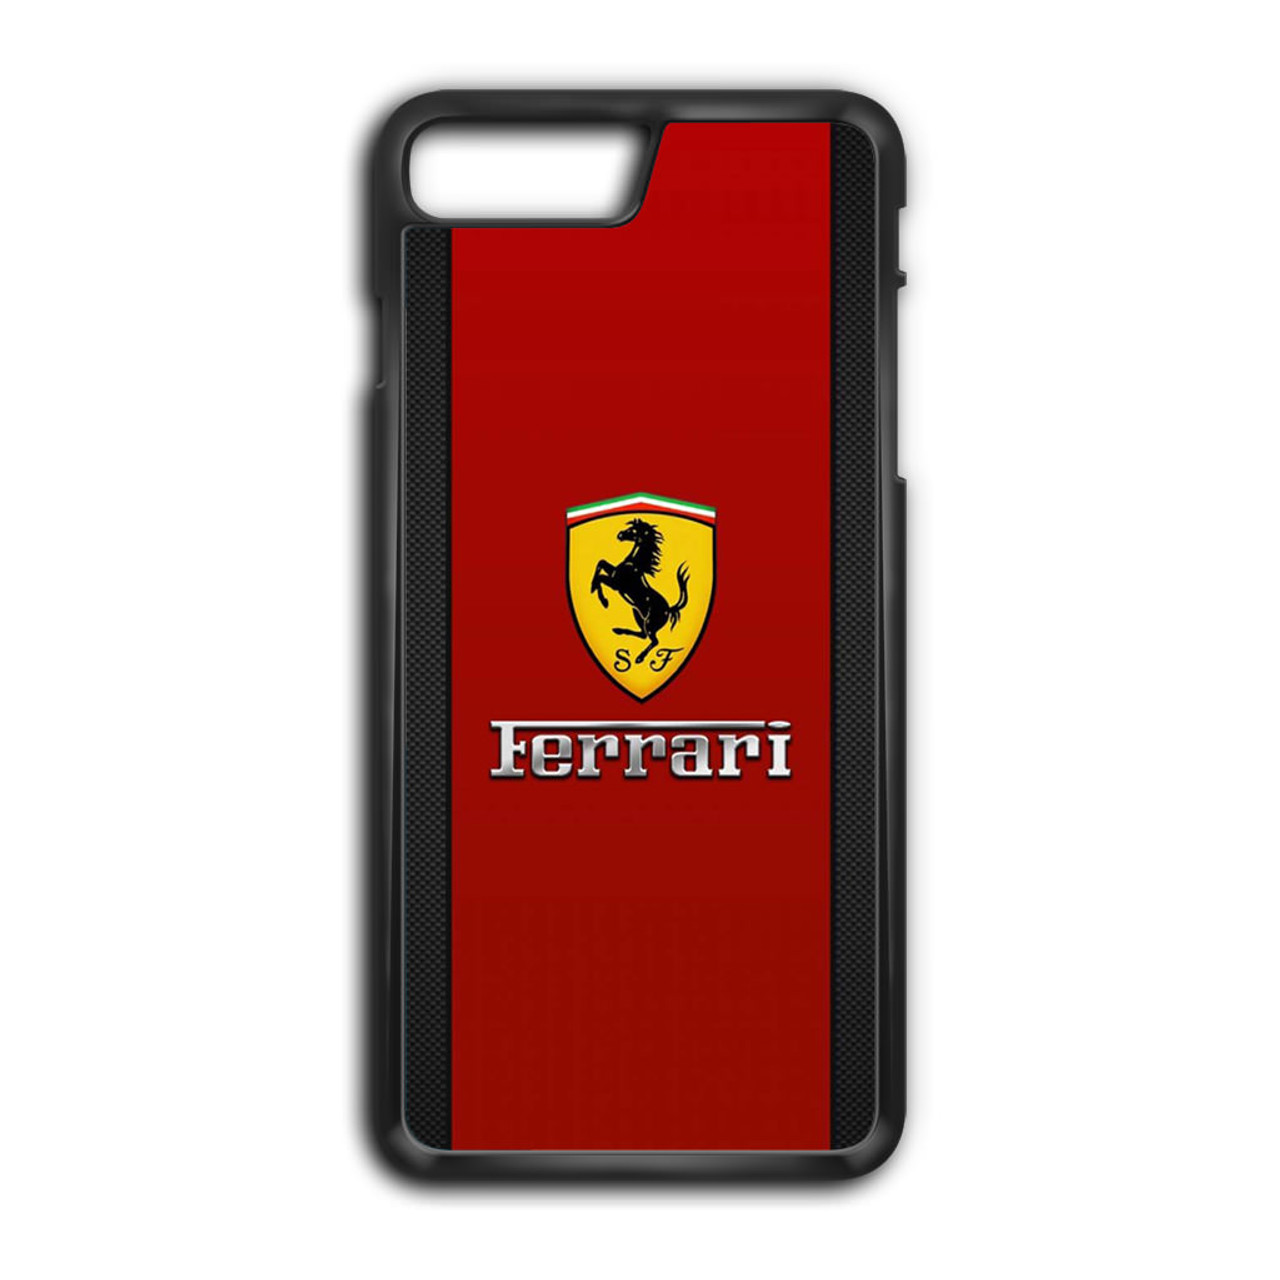 ferrari phone case iphone 8 plus